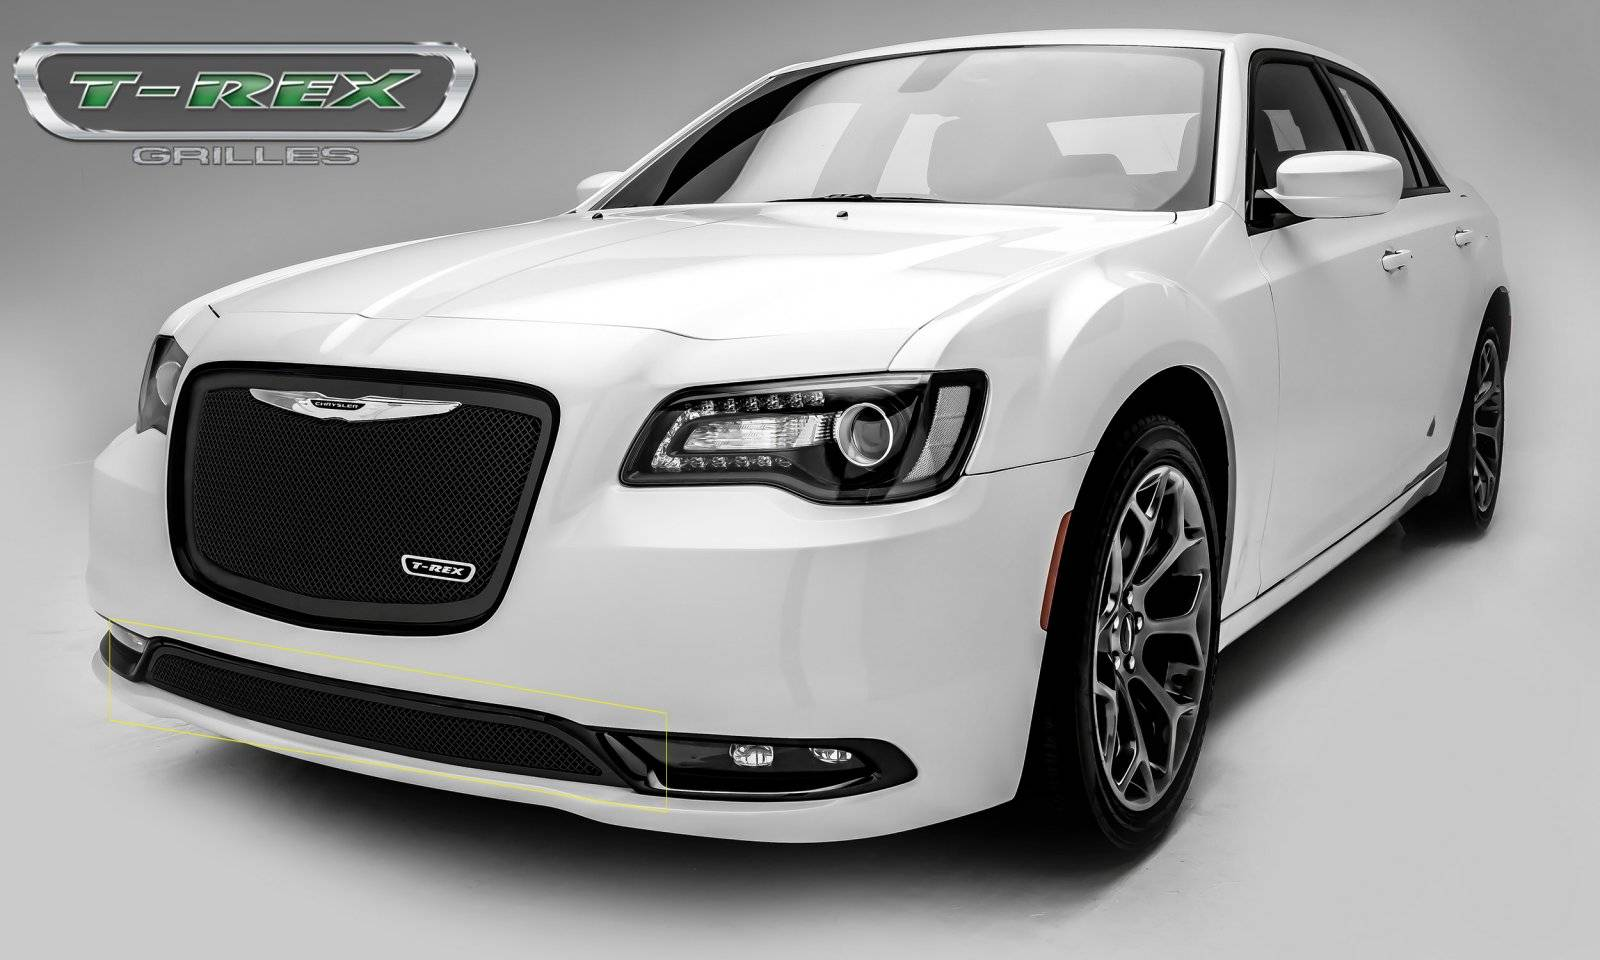 T rex chrysler 300 upper class series bumper grille overlay with black powder coat finish pt 52436